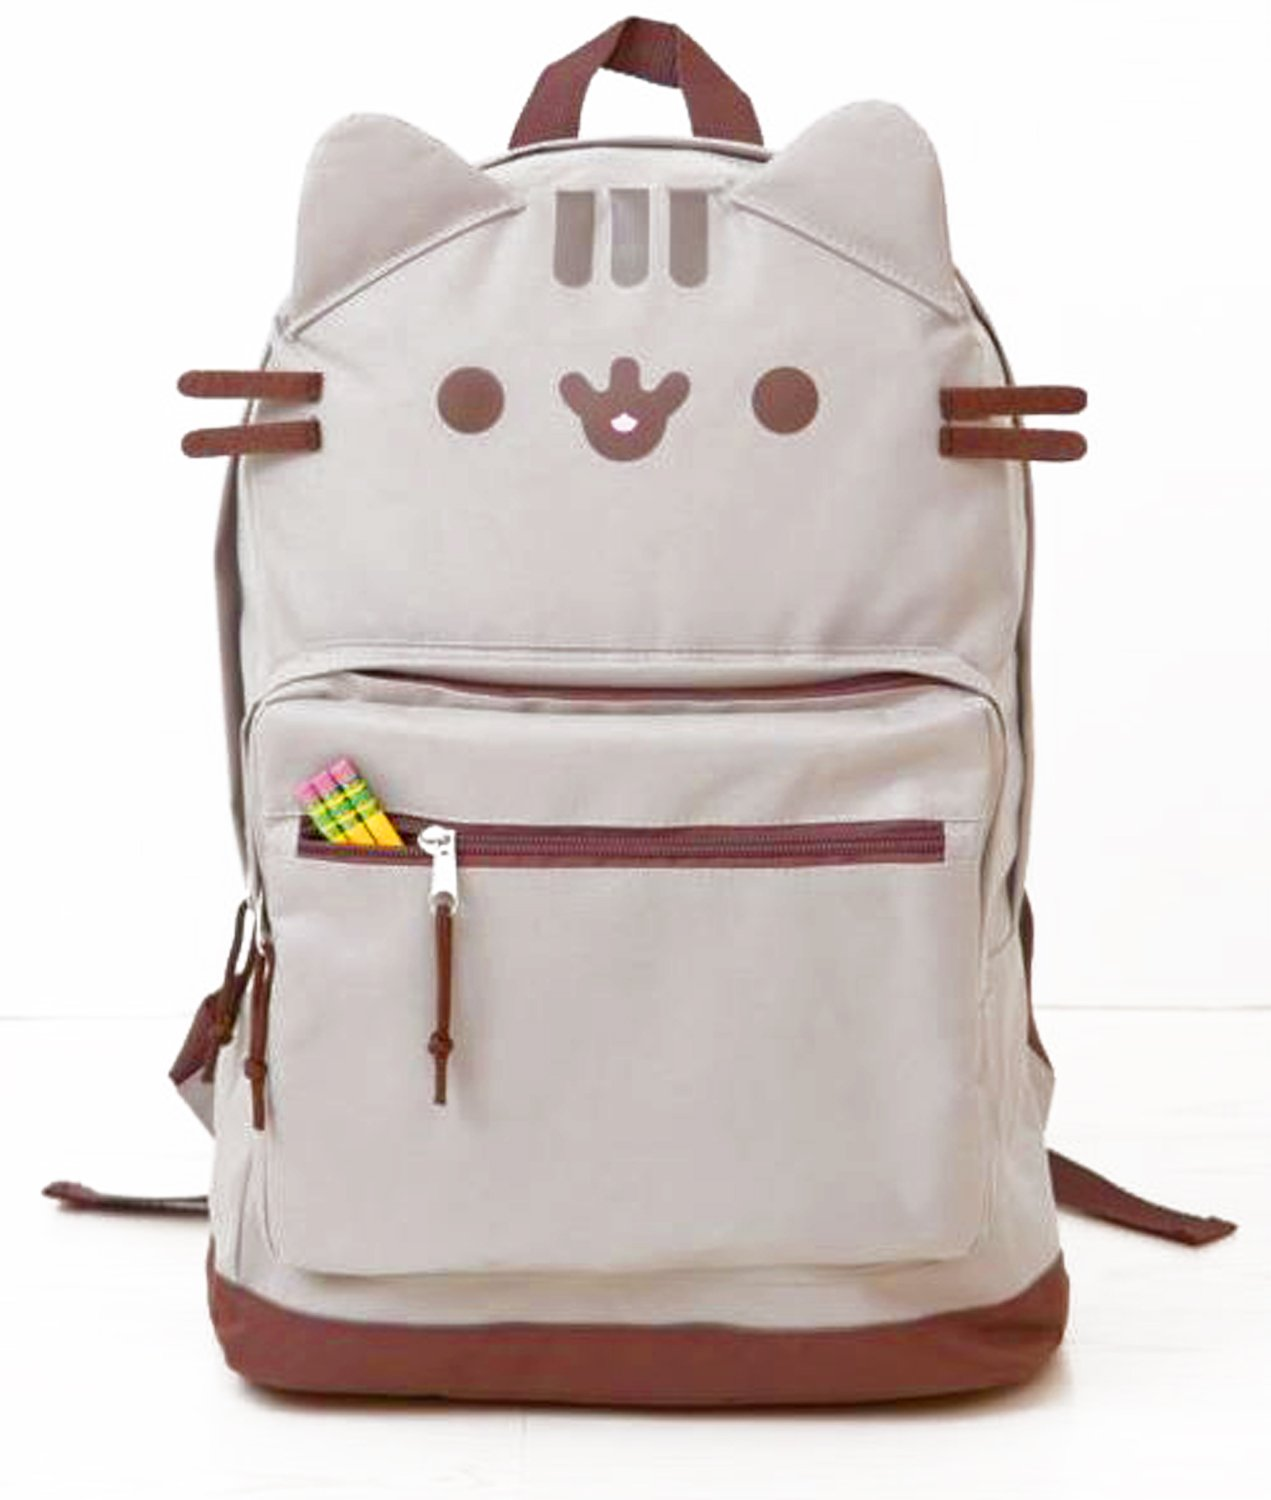 bbef8c2f2f Pusheen Cat Face Backpack – Gift For Pusheen Lover new - www ...